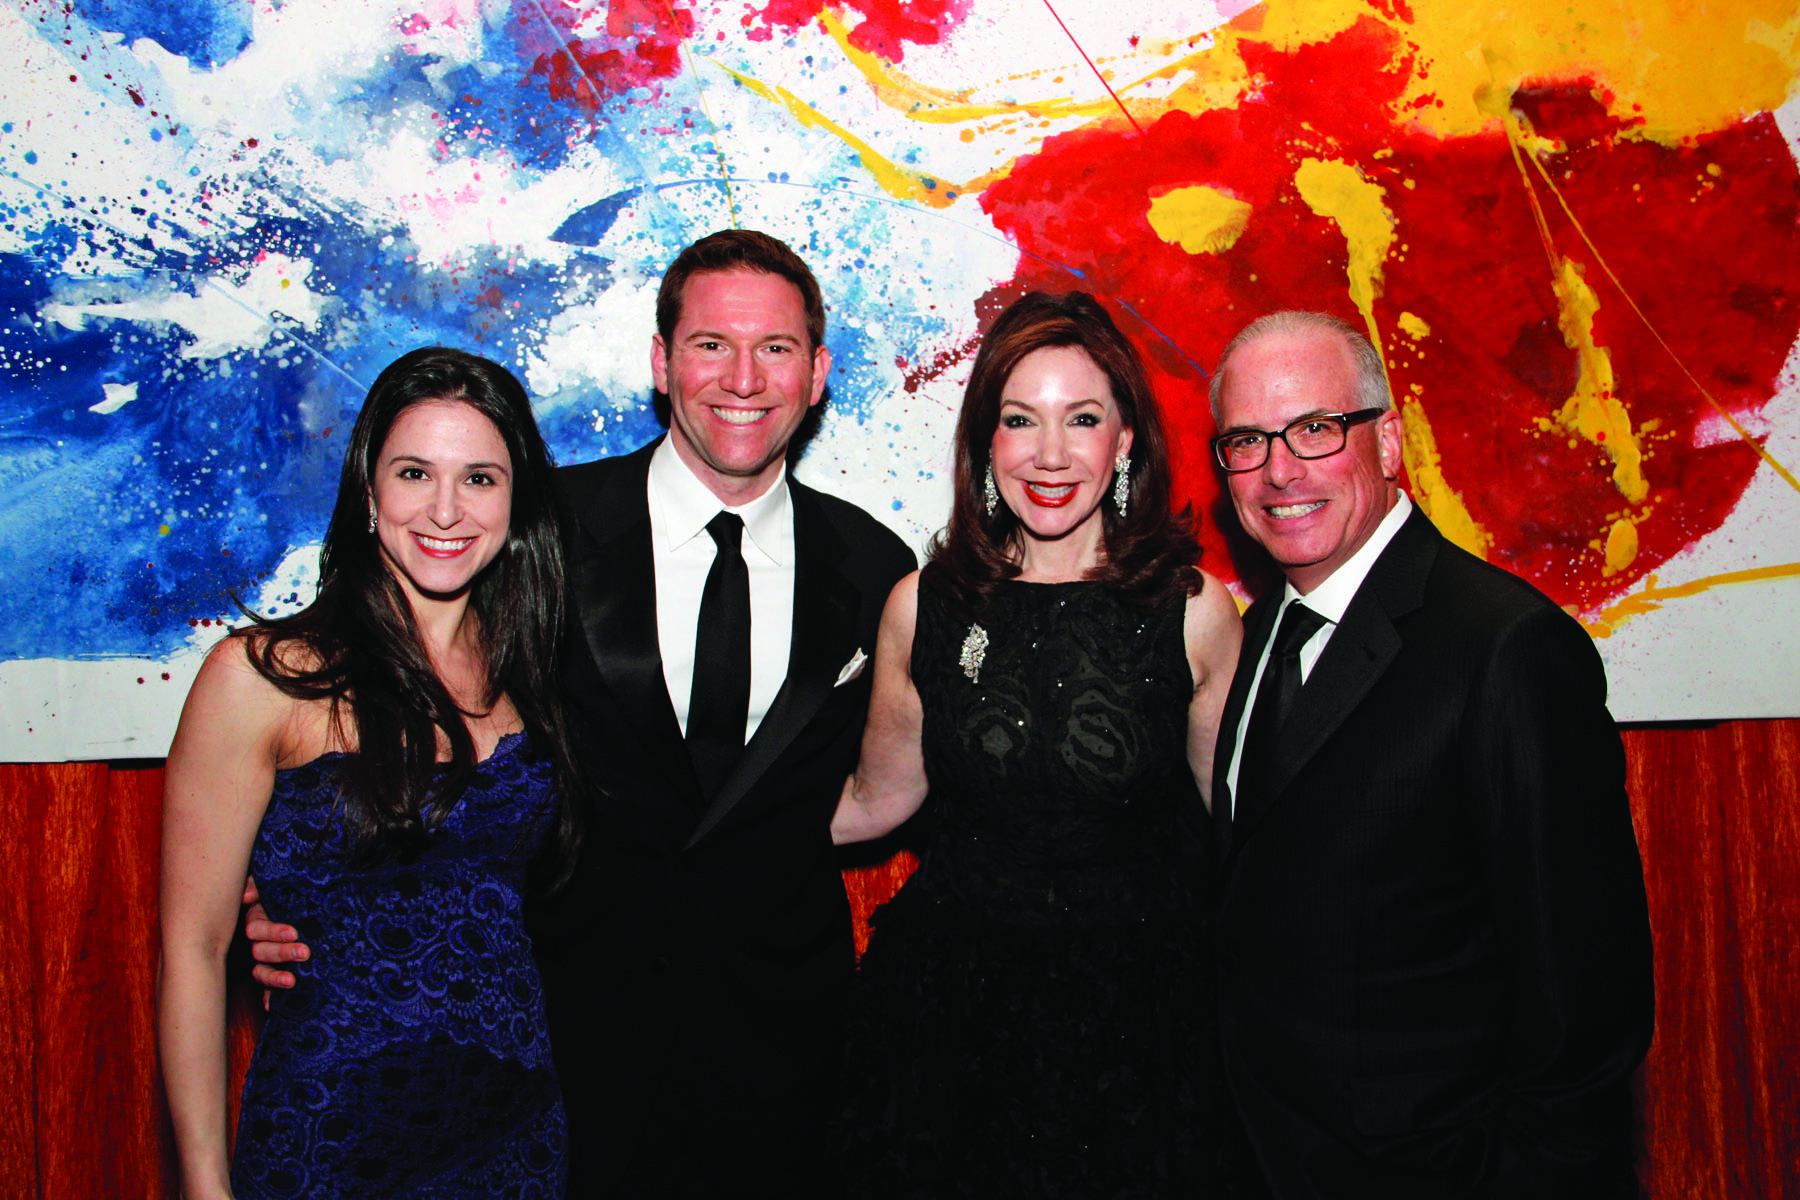 Society Scene photos - Against a colorful backdrop, Hali Utstein, left, David Silvers, Laurie Silvers and Mitchell Rubenstein set the tone for a fun evening at the Raymond F. Kravis Center for the Performing Arts